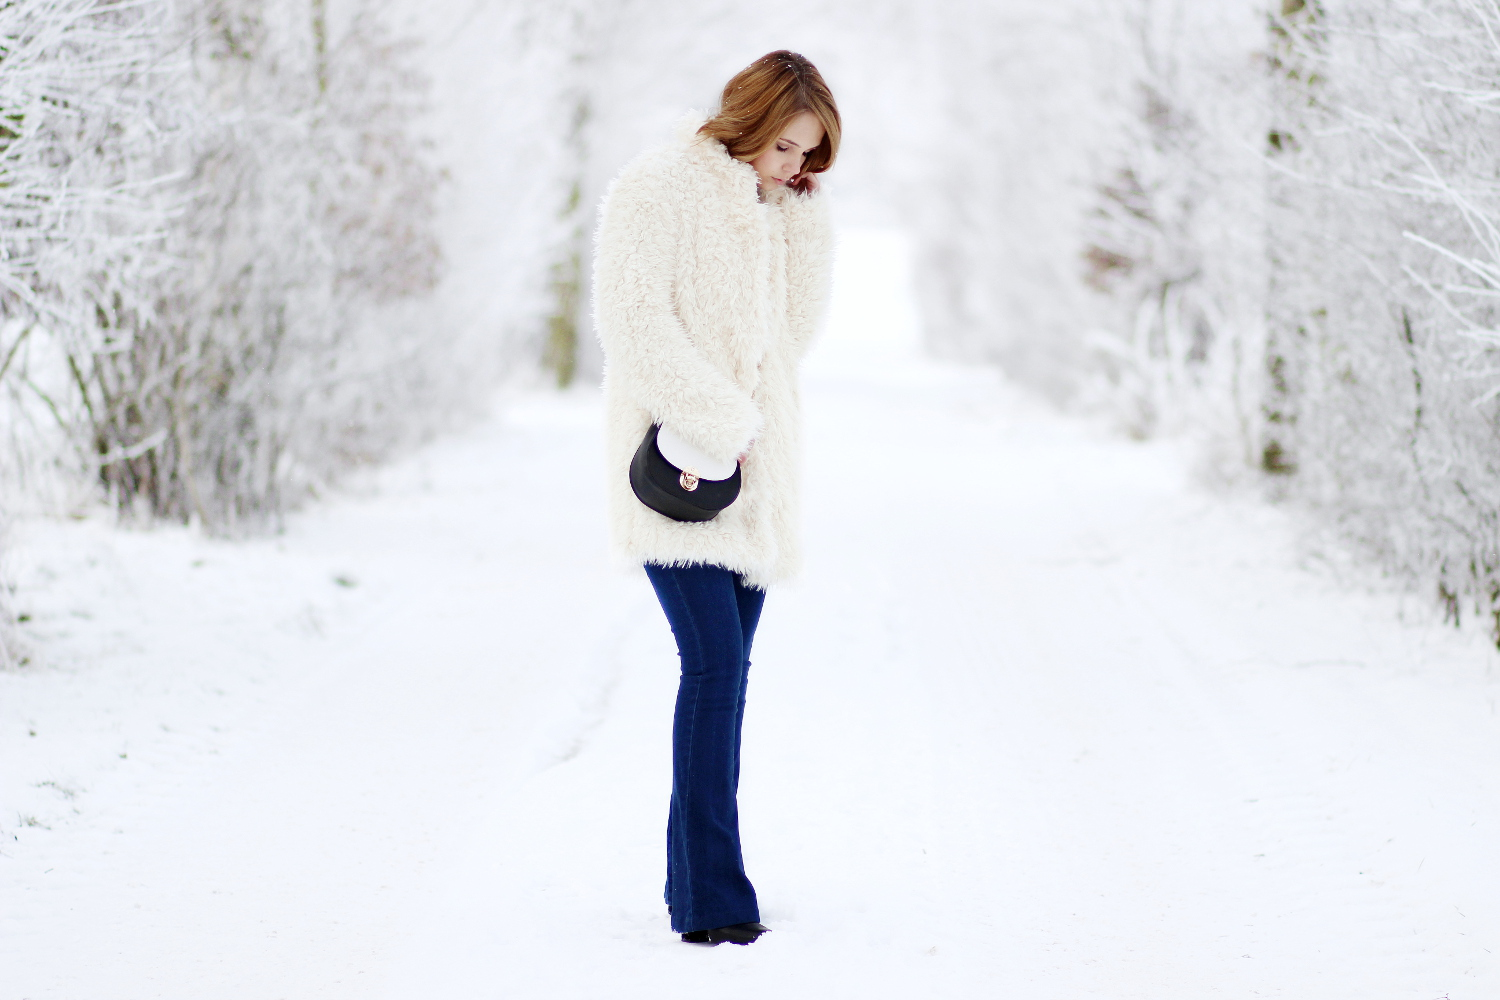 bezauberndenana-fashionblog-outfit-streetstyle-faux-fur-jacke-flared-jeans-winteroutfit (3)